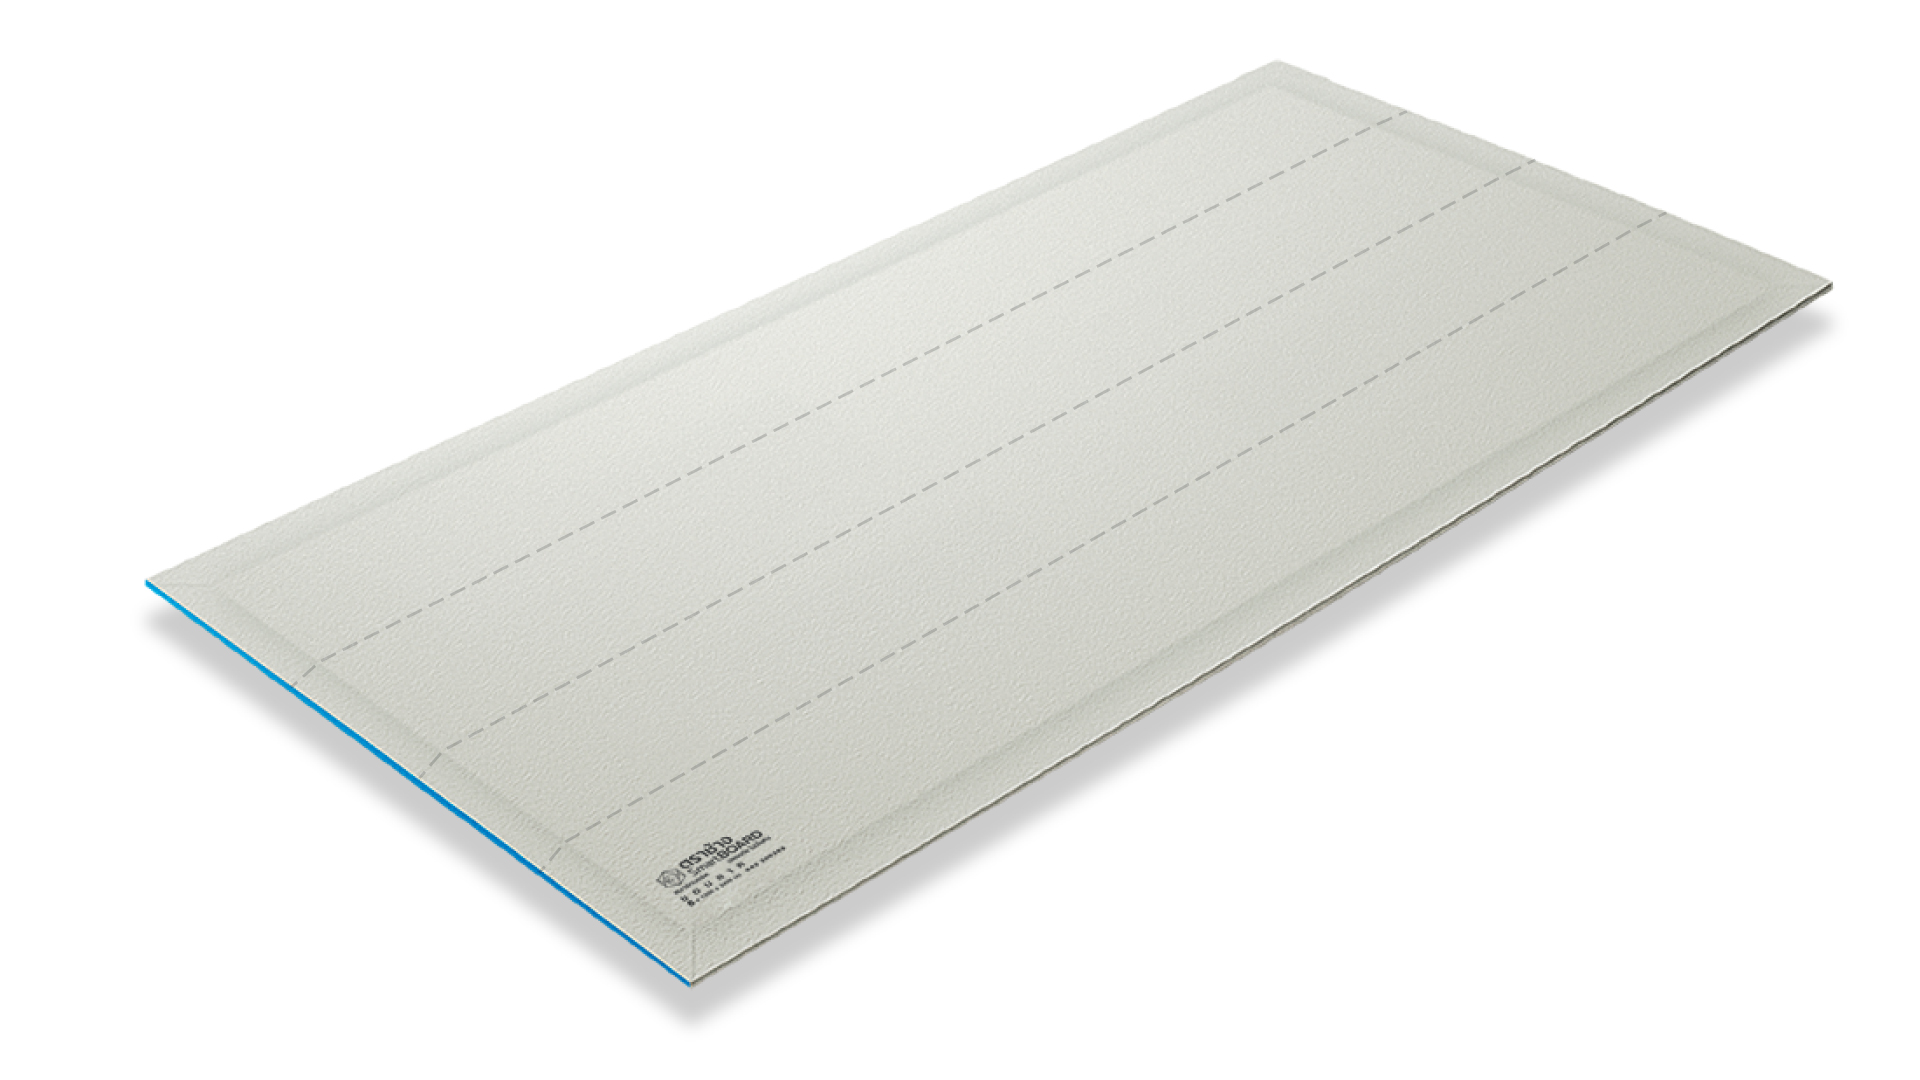 Fiber Cement Sheet for Wall - 2 side Tapered Edge with Lining